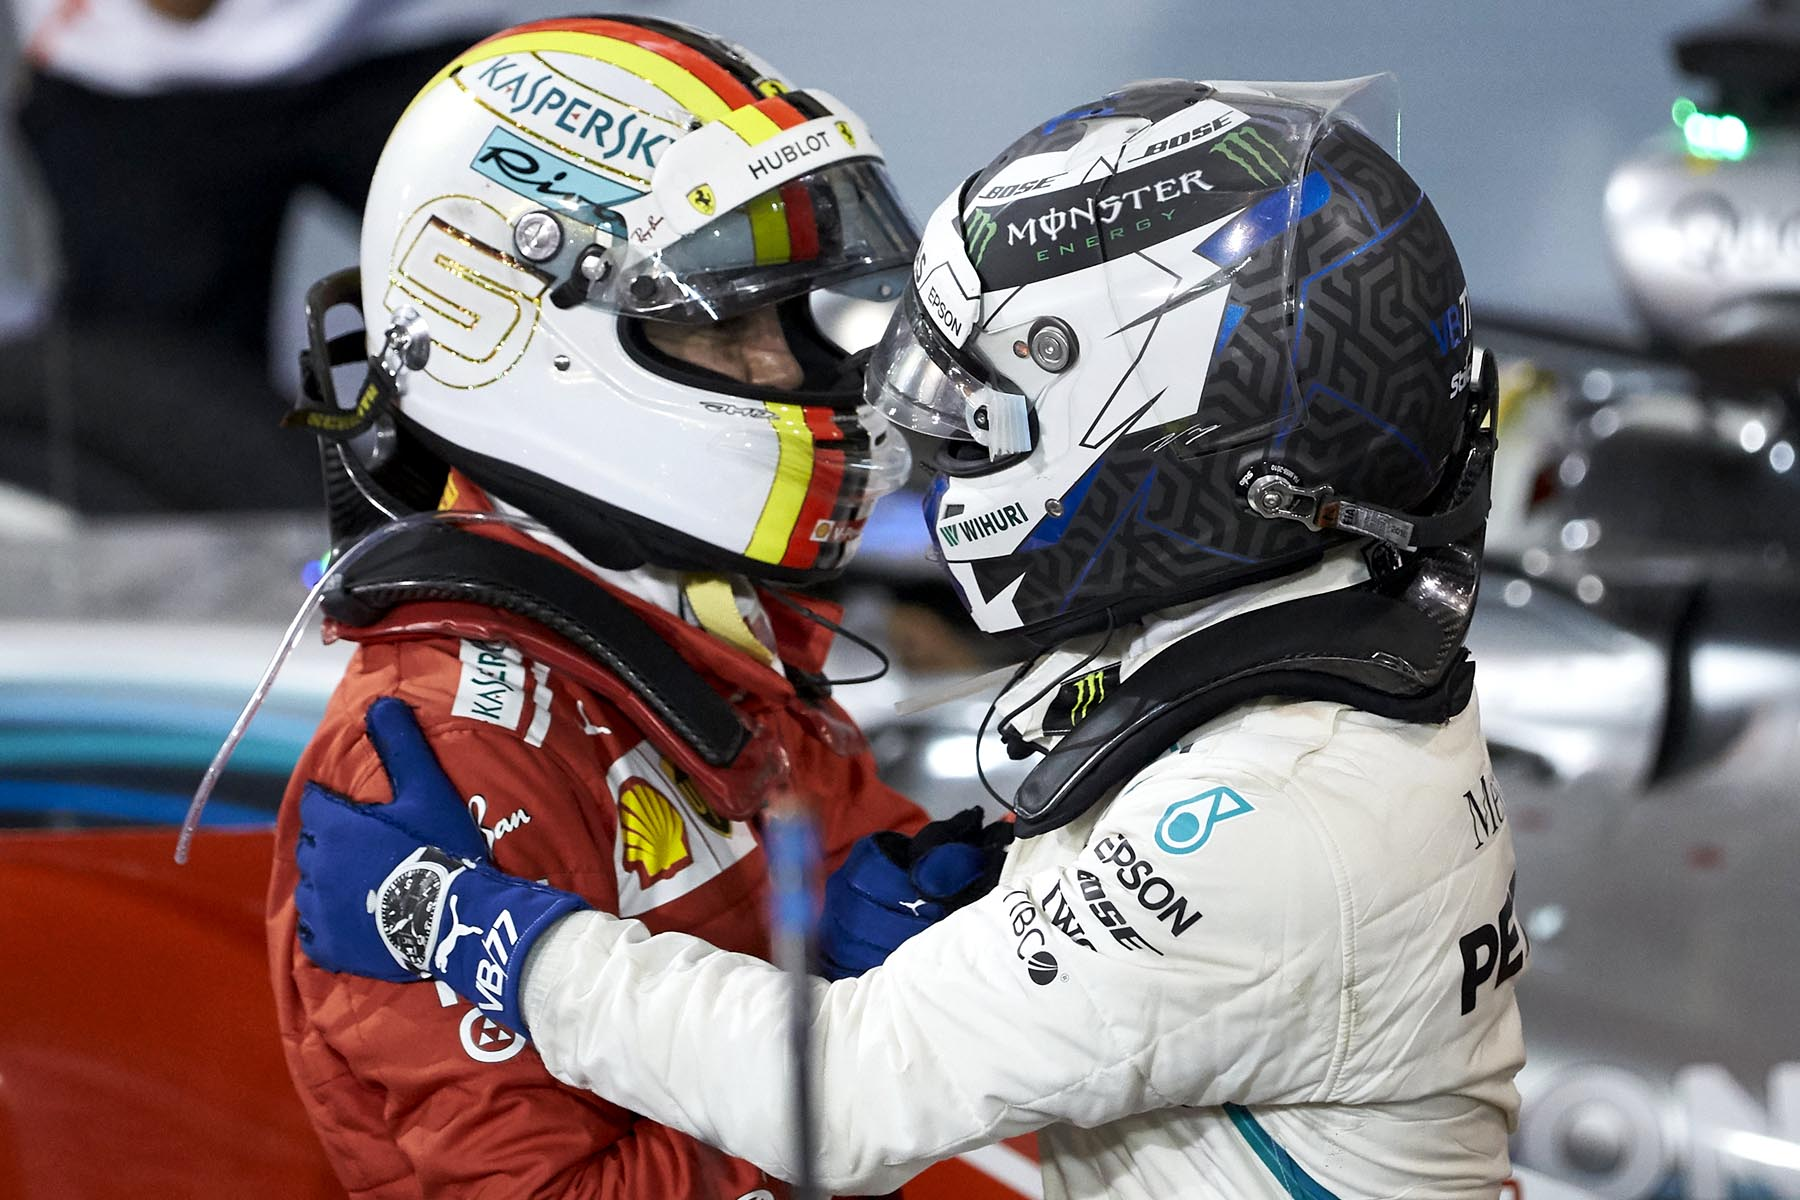 Vlatteri Bottas congratulates Sebastian Vettel on winning the 2018 Bahrain Grand Prix.